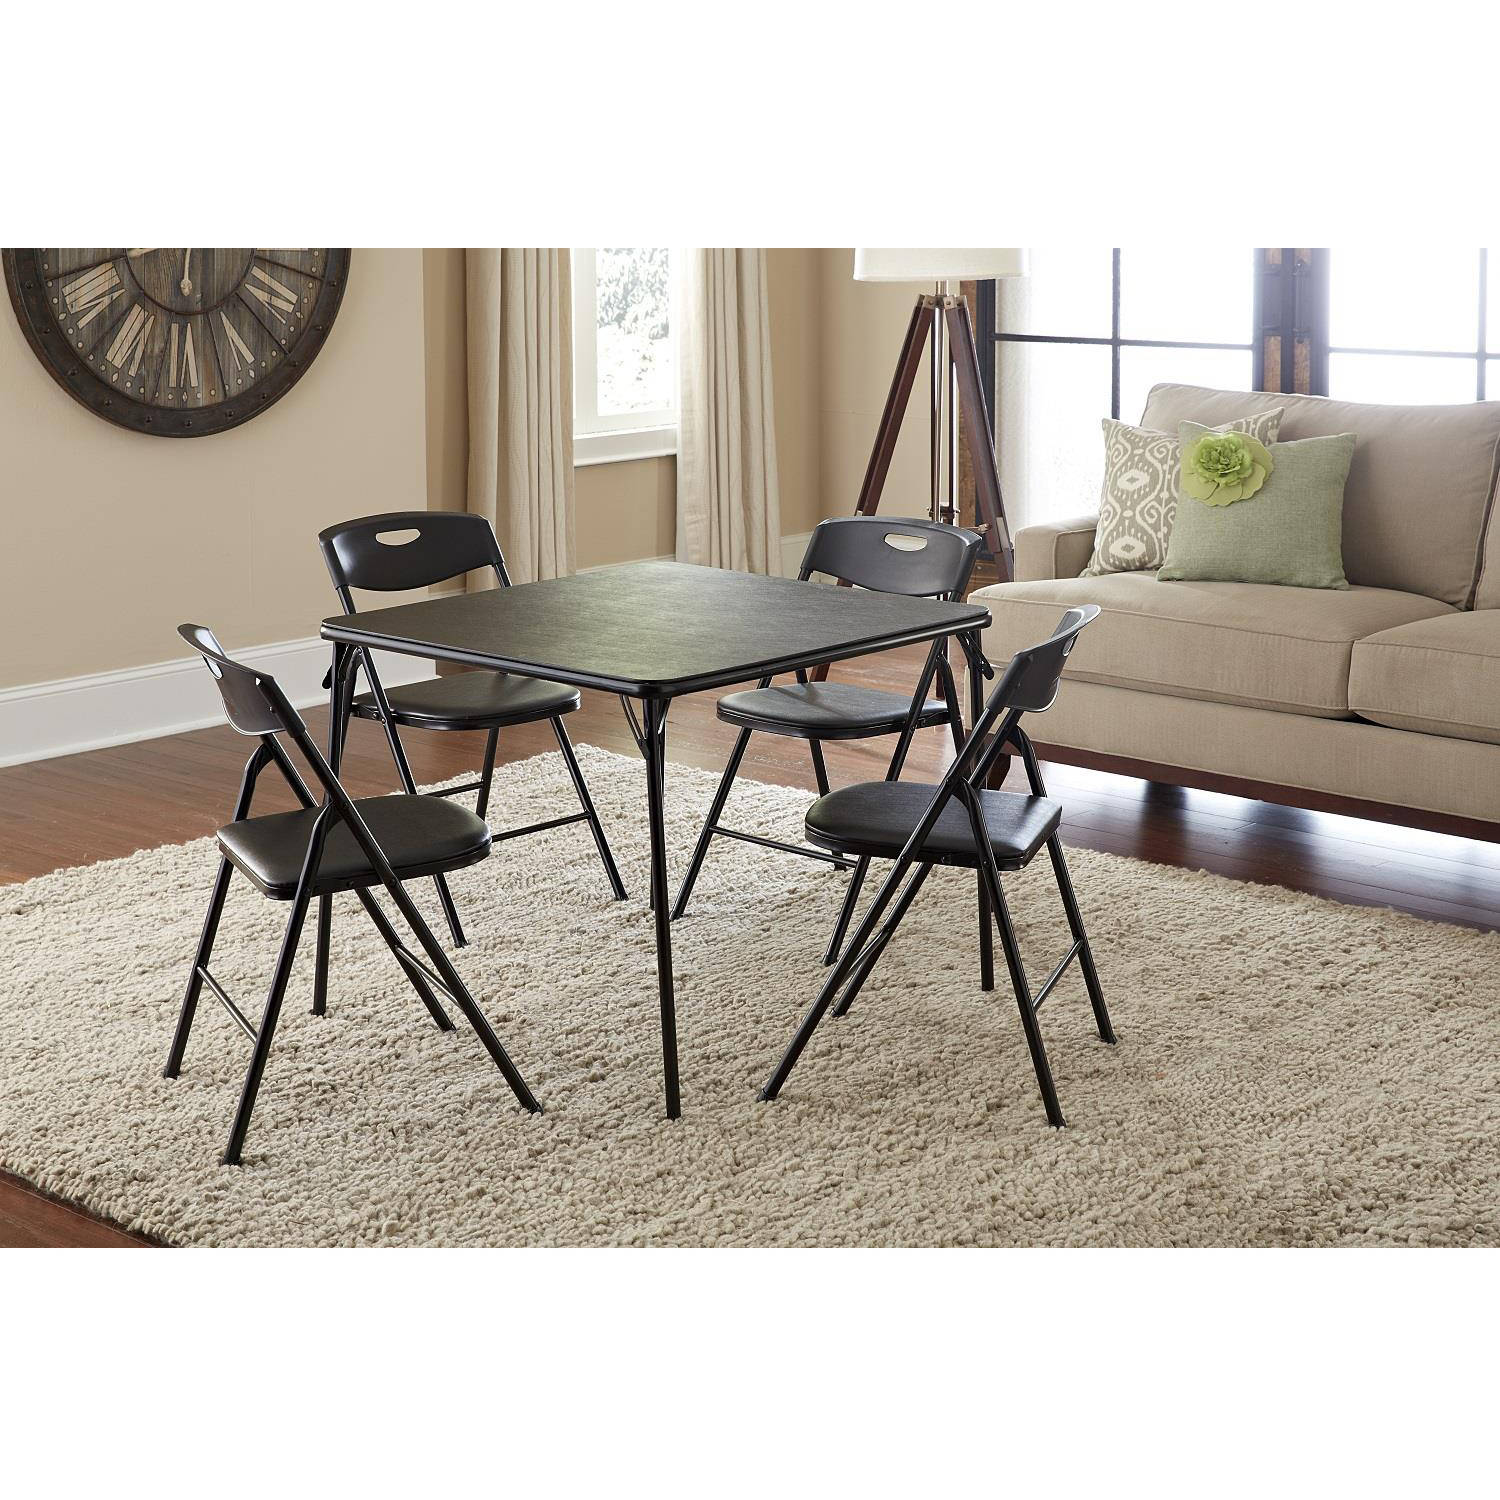 Cosco 5pc Card Table Set by Generic